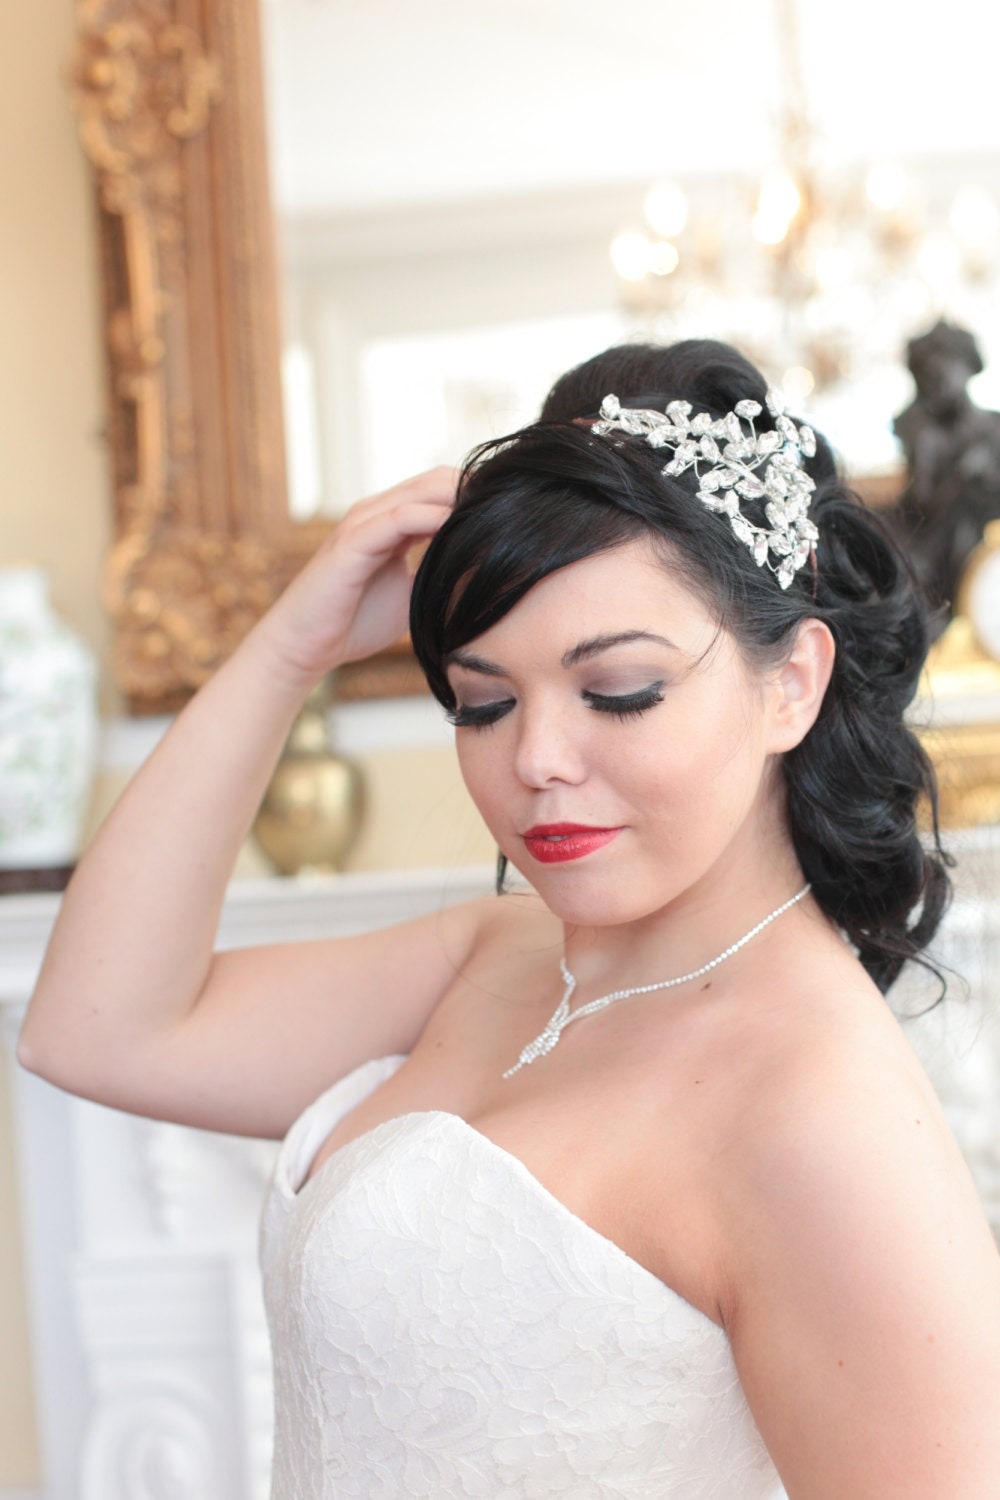 bridal hair accessories sheffield: how to style wedding hair